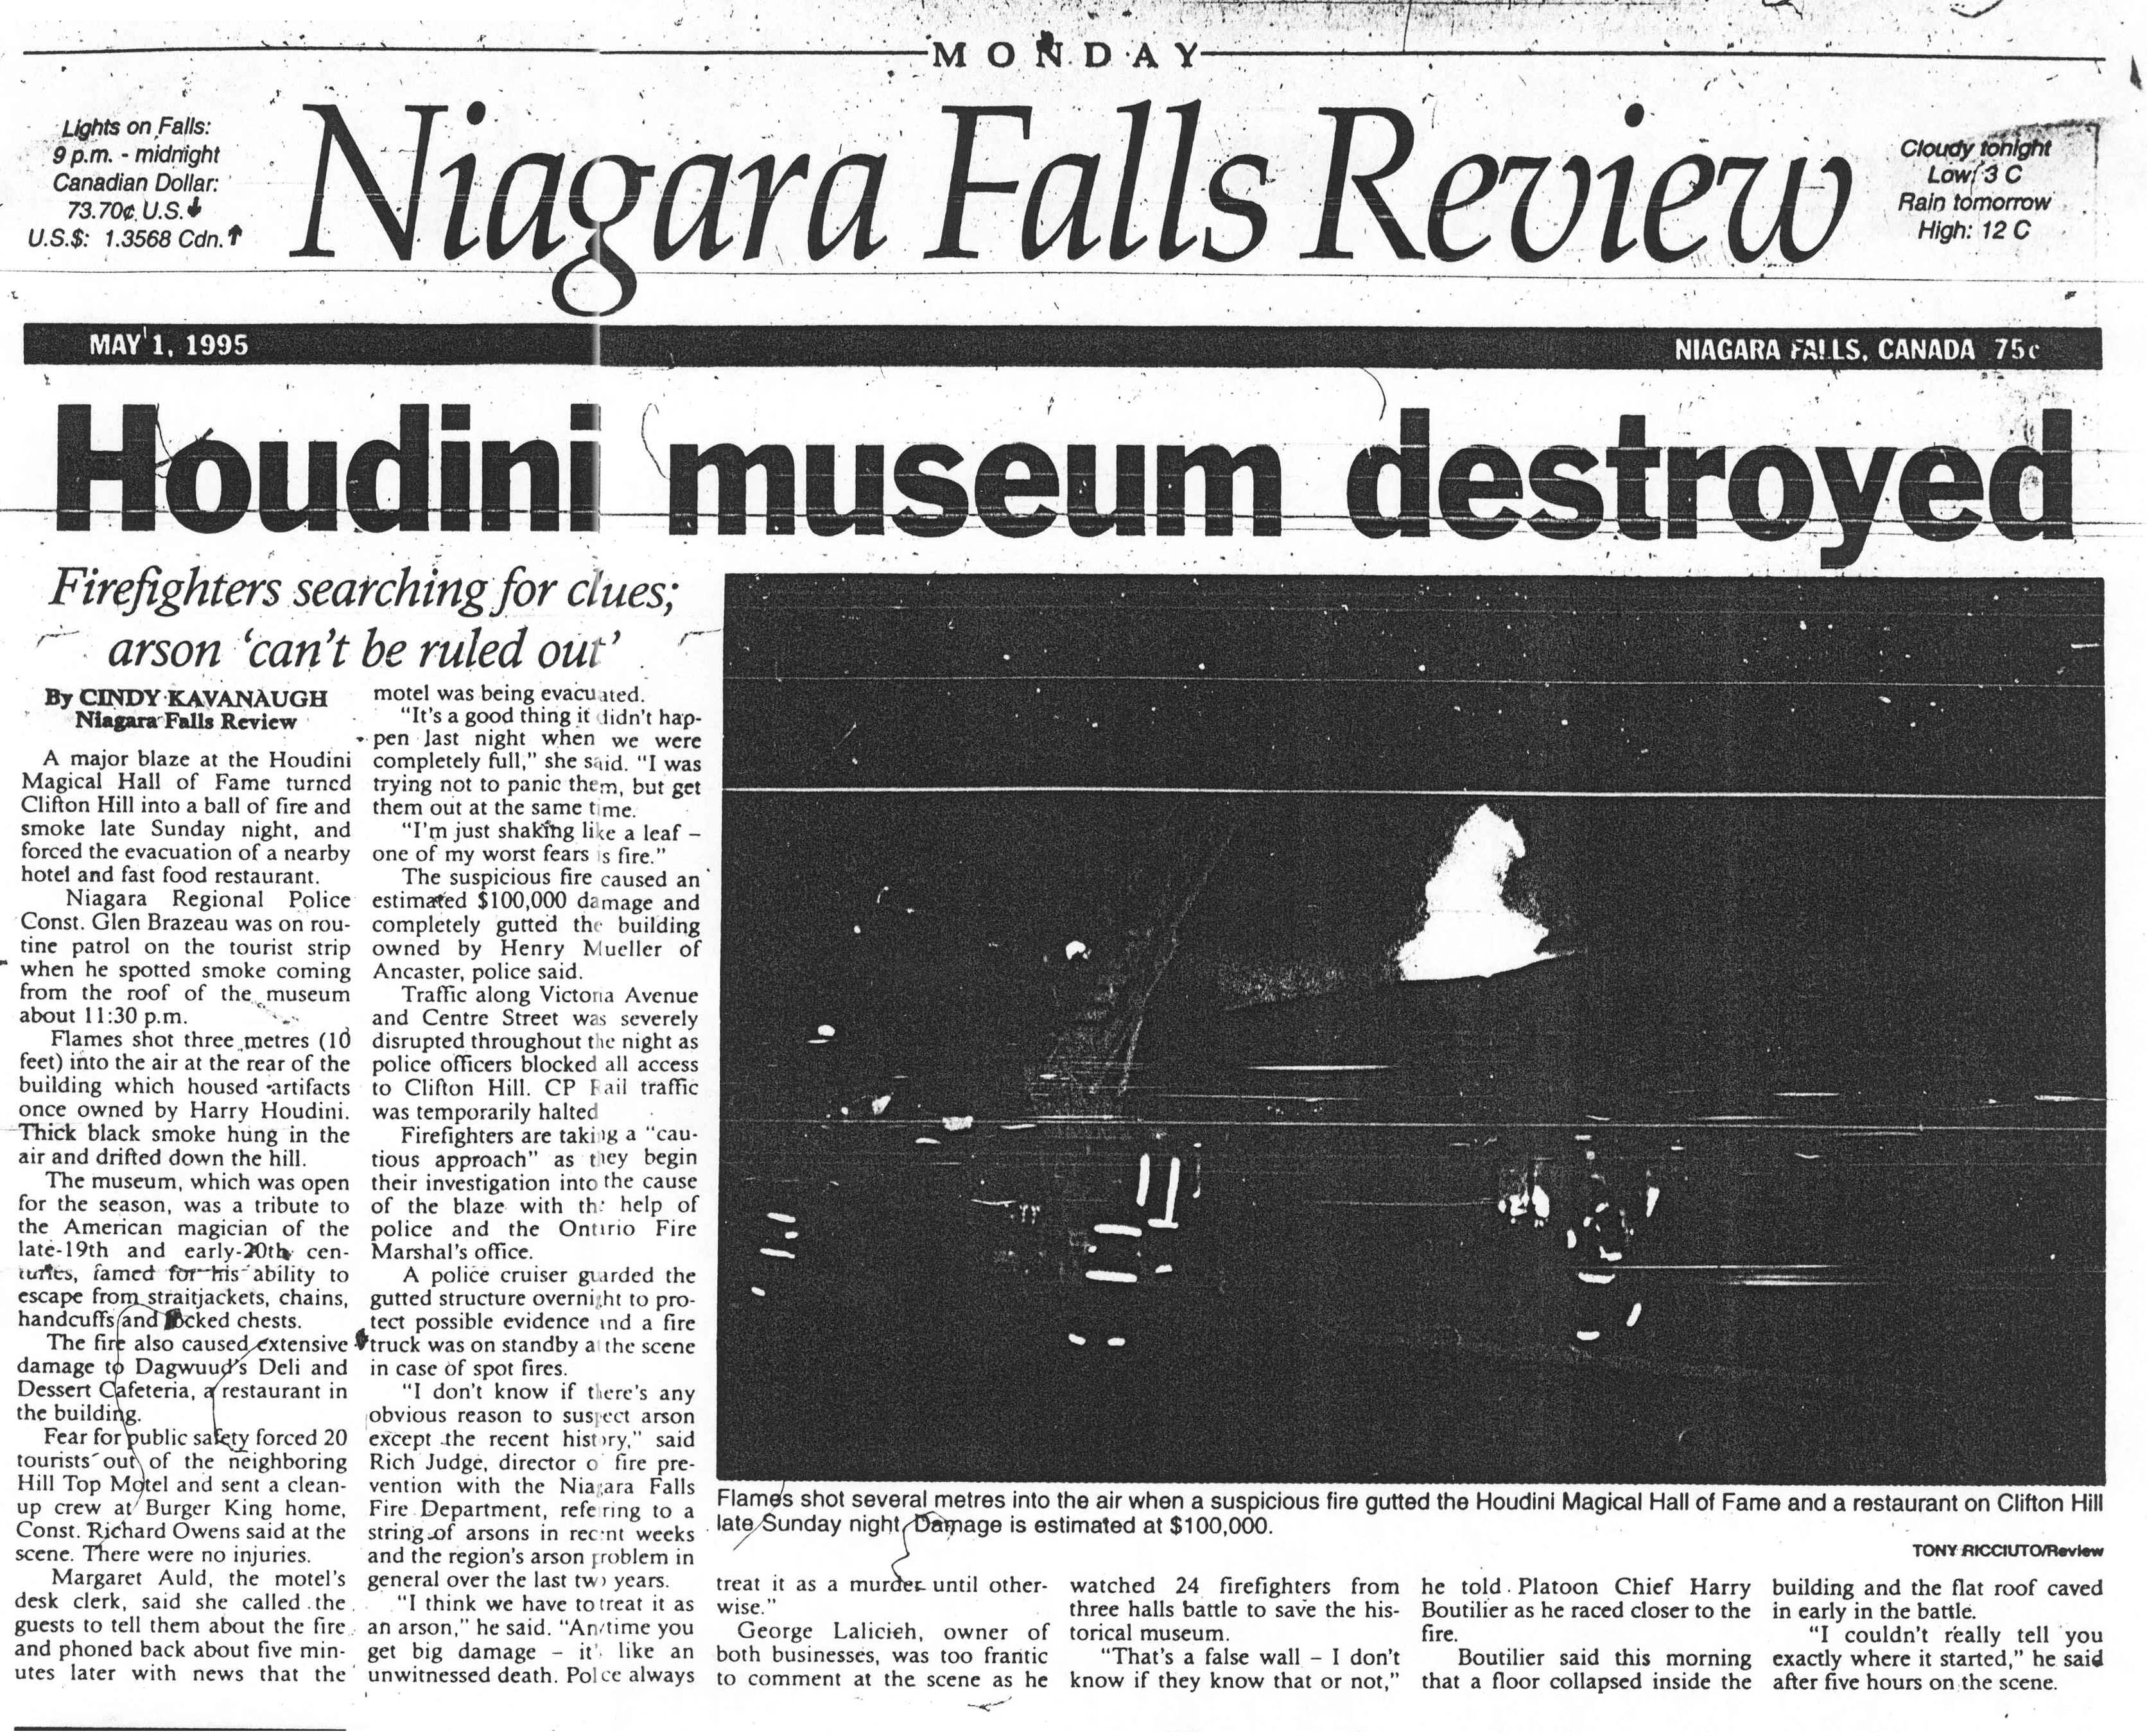 Houdini museum destroyed Sect A (image/jpeg)